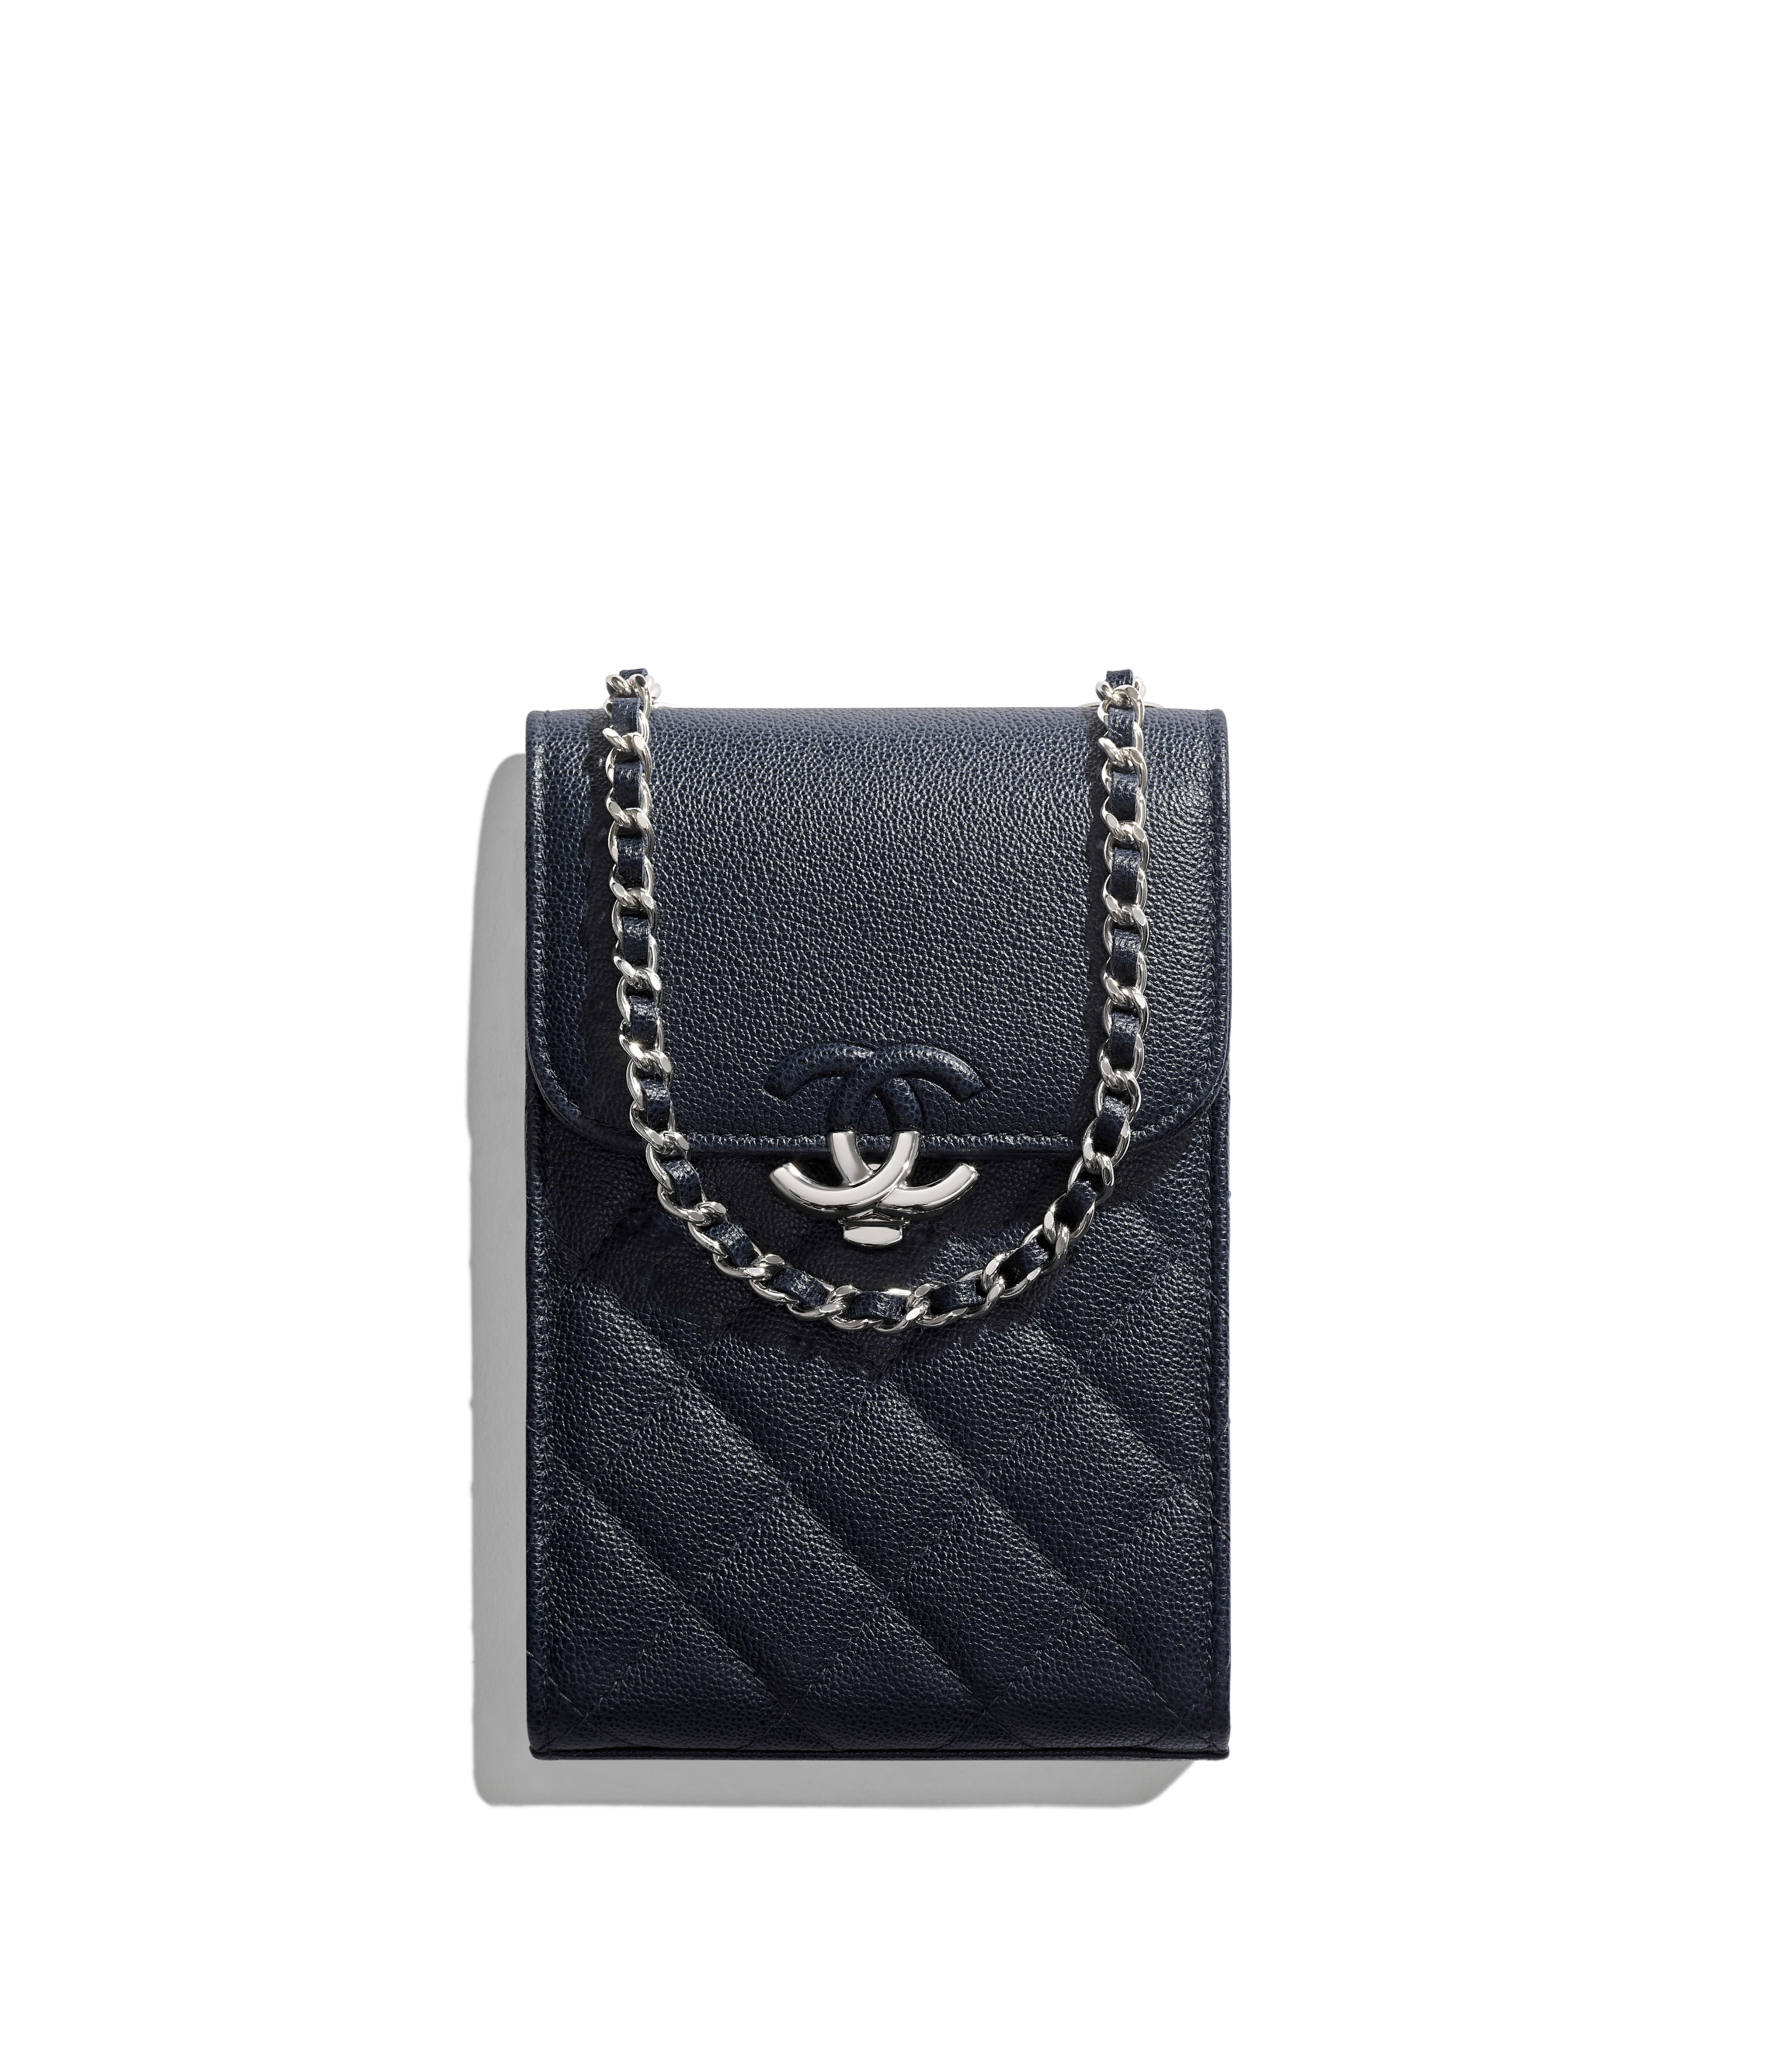 623570dcbfd7 Clutch with Chain Grained Calfskin & Silver-Tone Metal, Navy Blue Ref.  AP0009B00035N0417